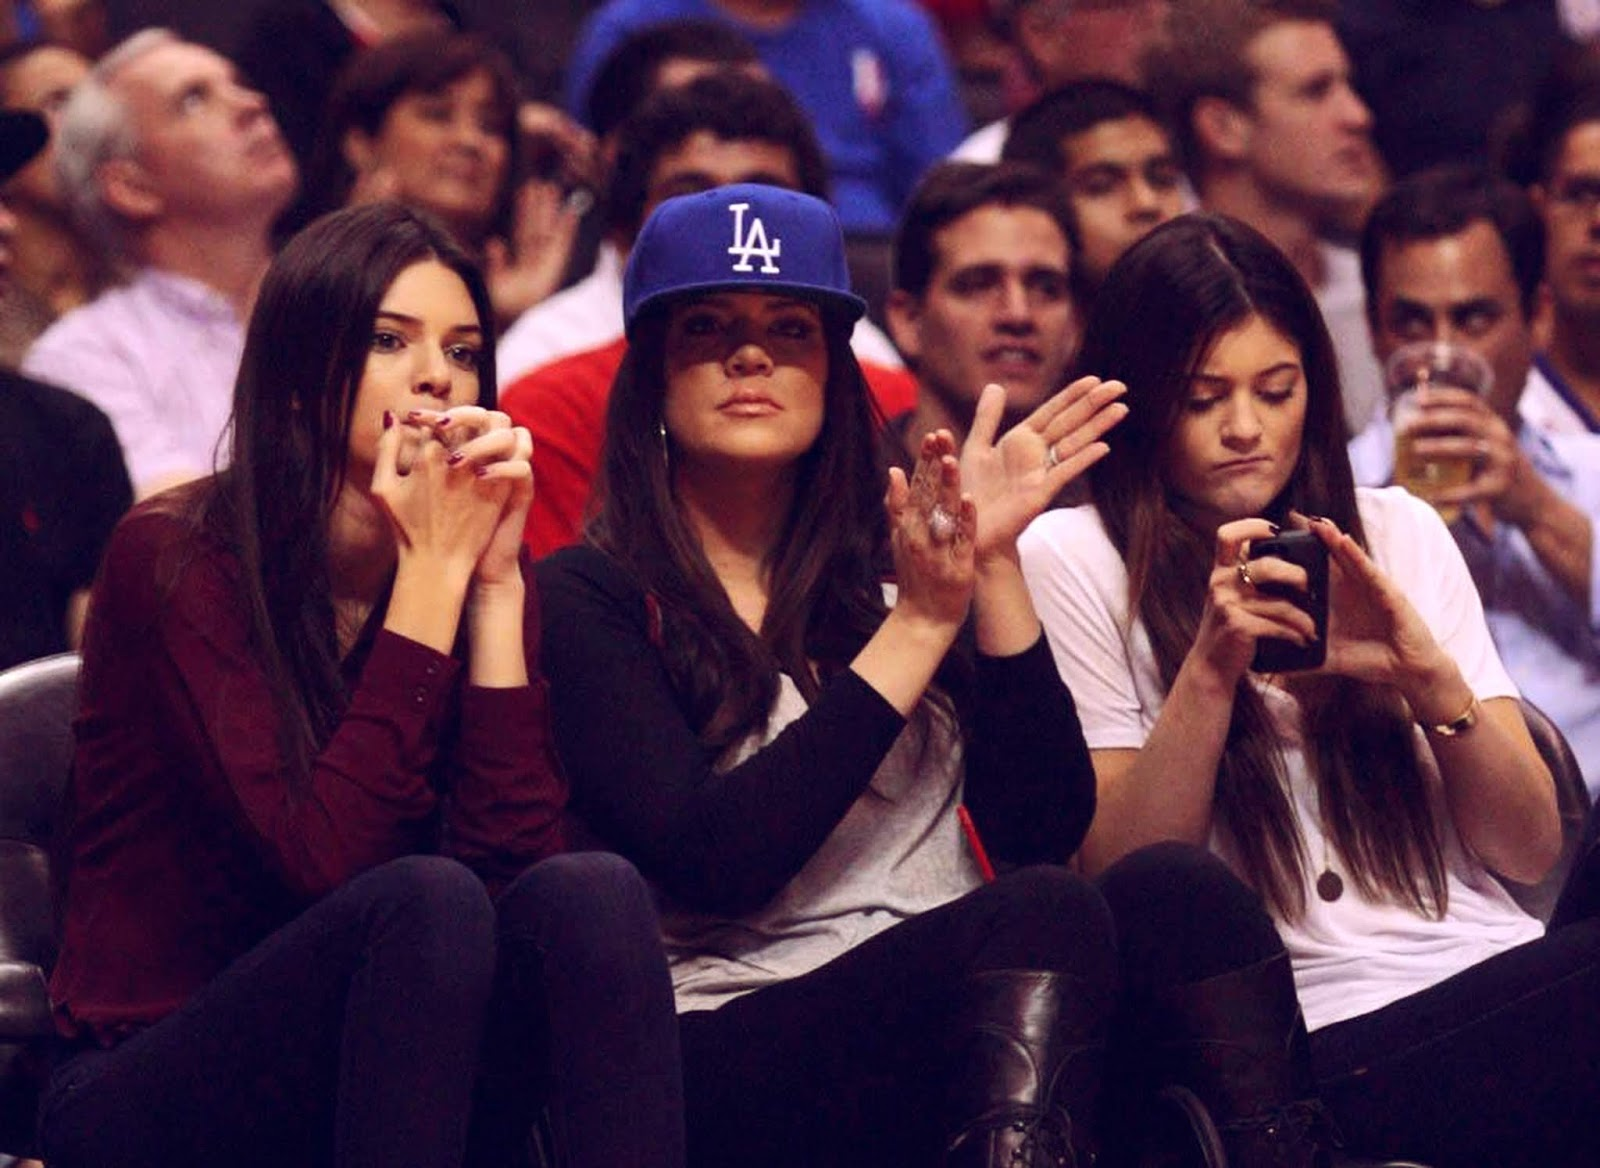 08 - Watching The Los Angeles Clippers Game on October 17, 2012